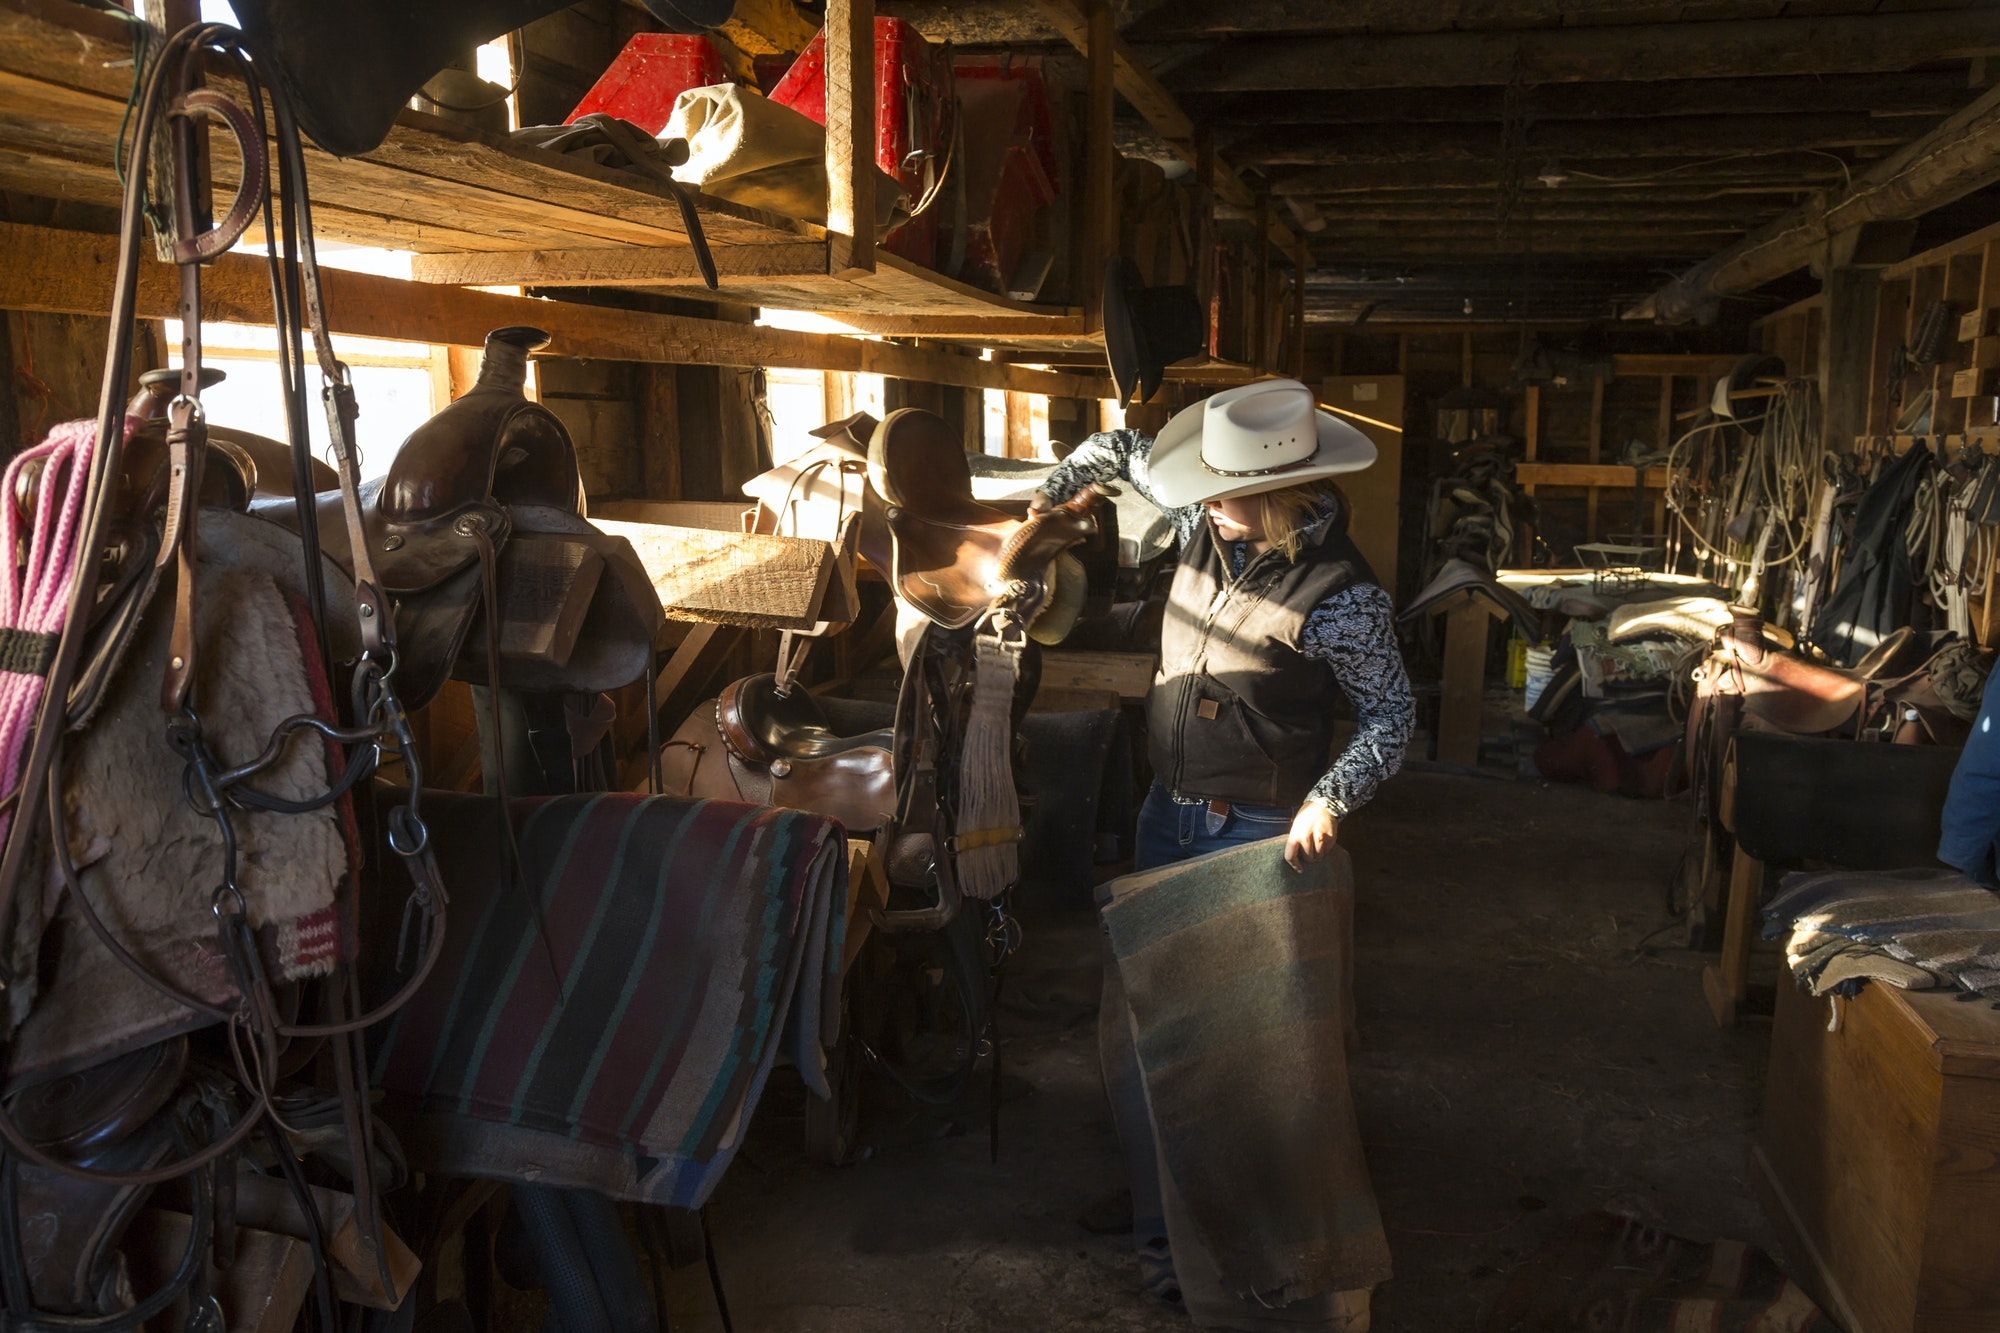 Cowboy standing in stable with racks of riding tack and saddles, holding leather saddle and striped